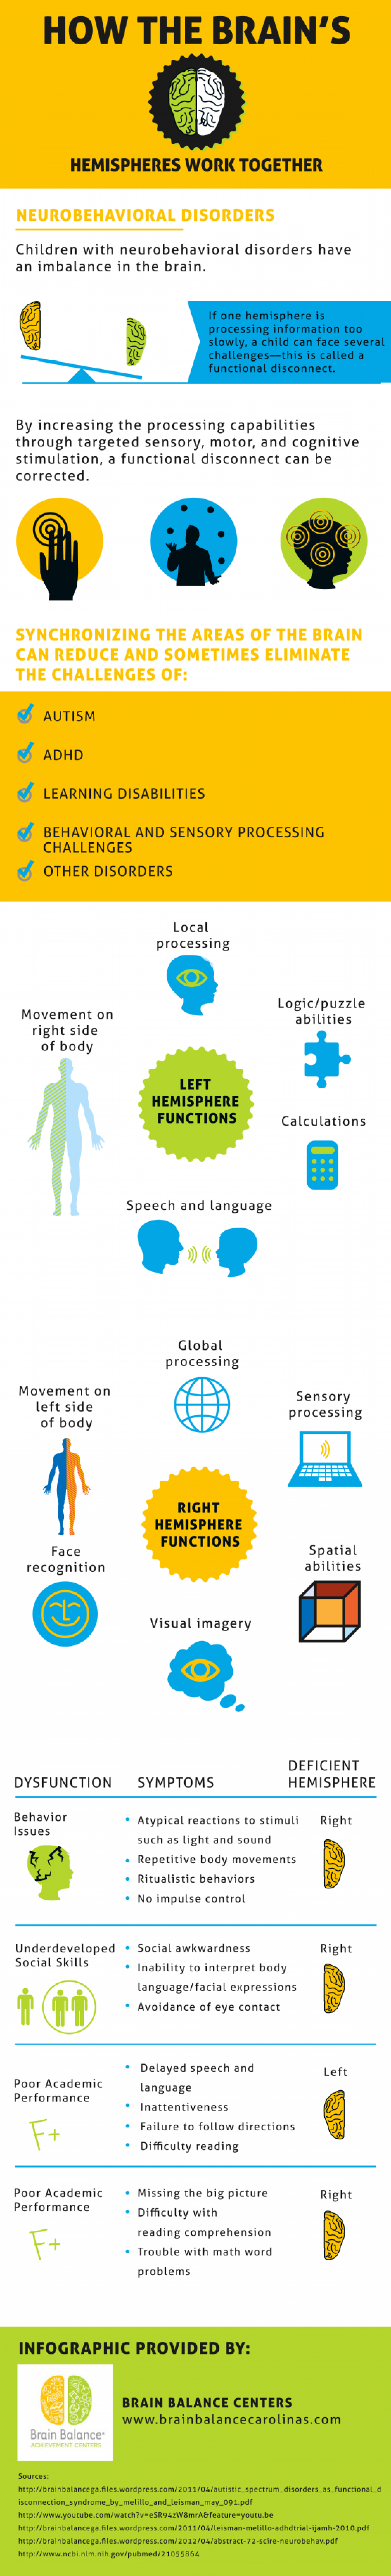 How The Brain's Hemispheres Work Together Infographic